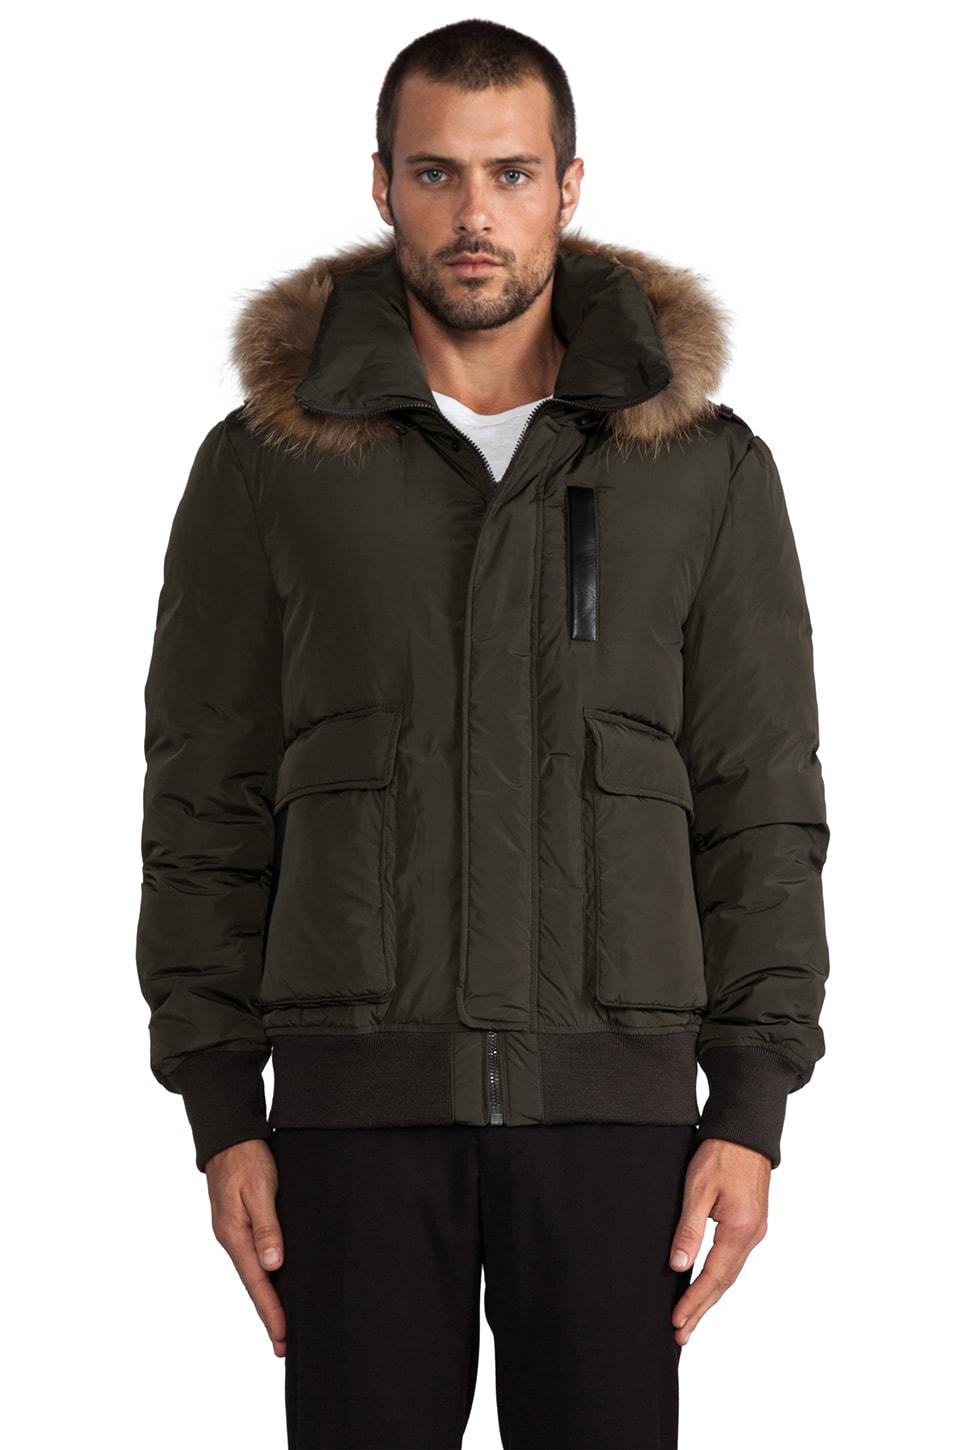 Mackage Diego Bomber Jacket w/ Fur Lined Hood in Army